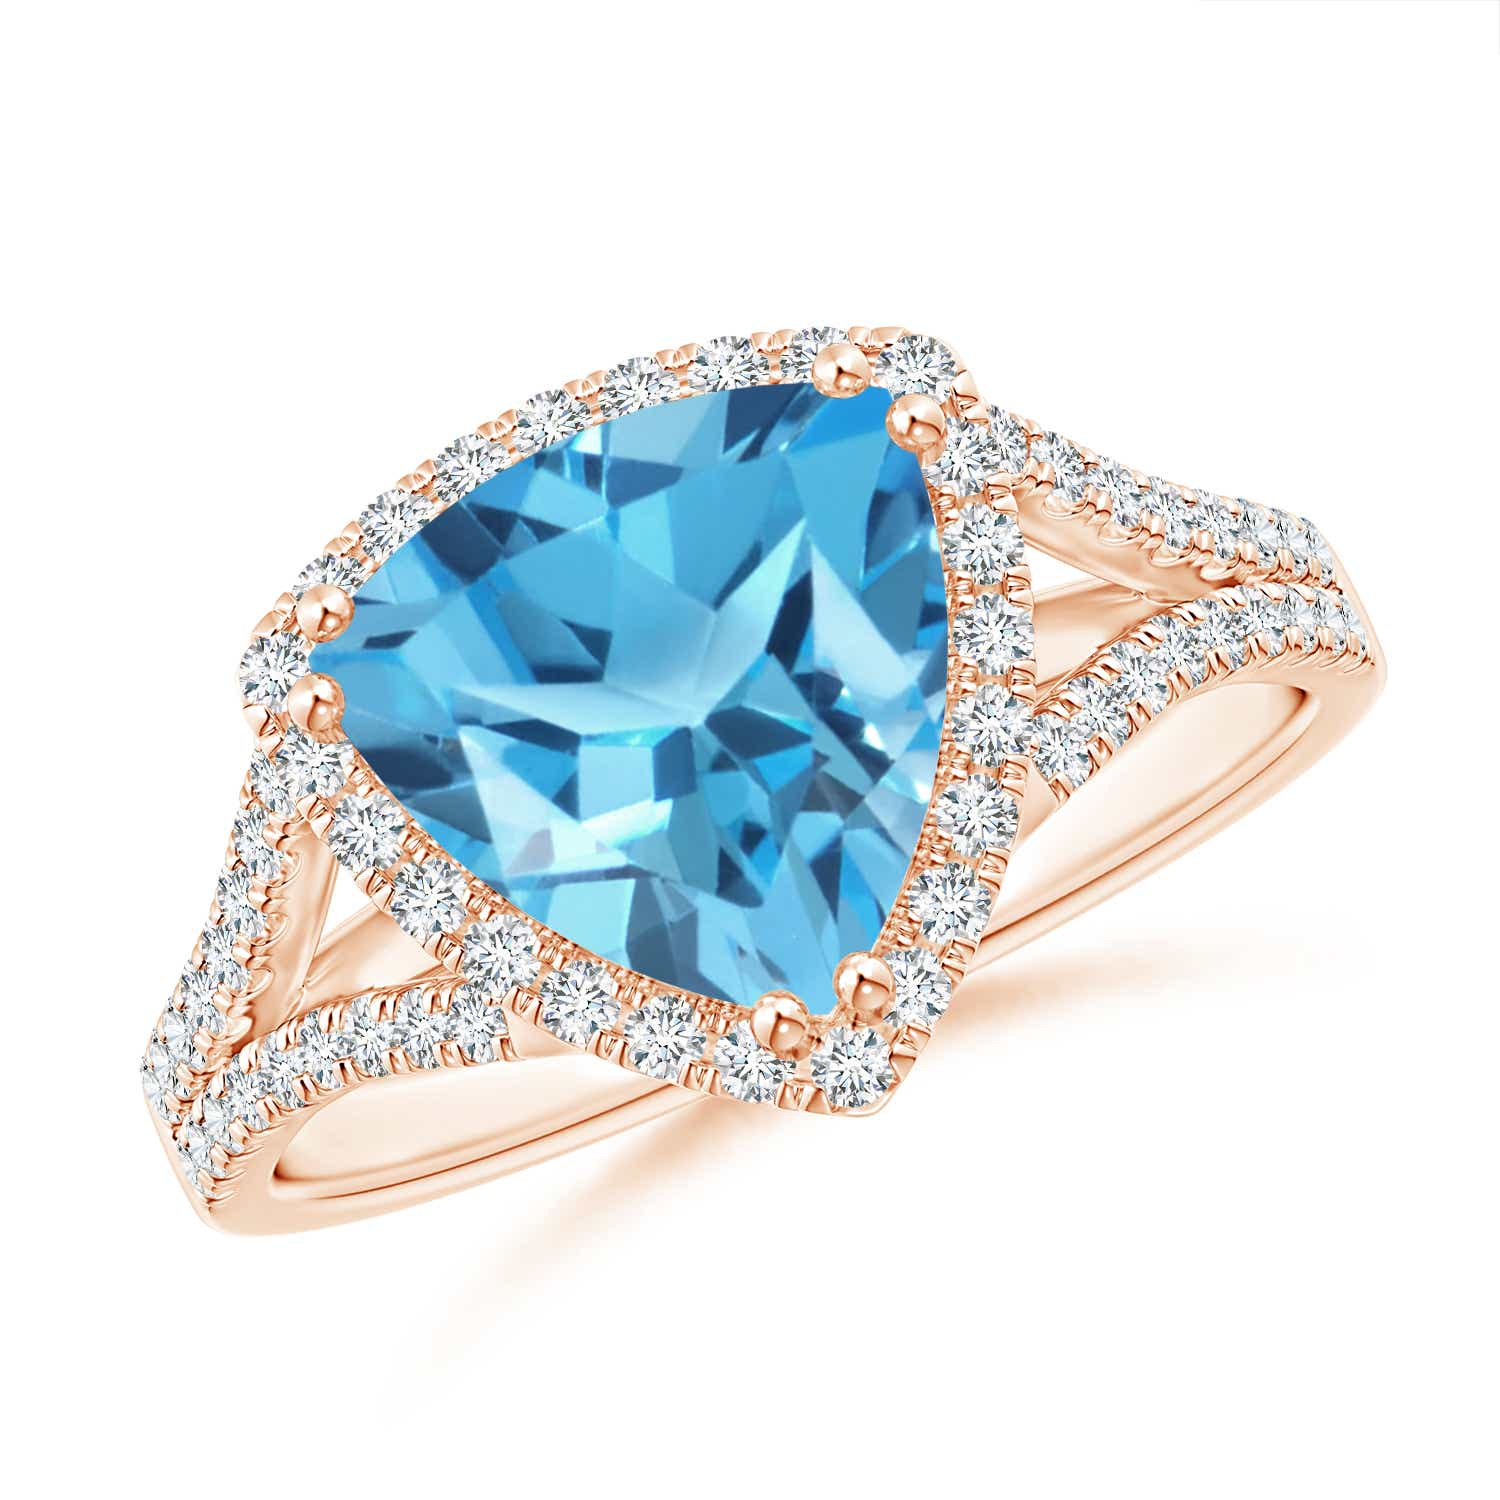 Angara Emerald-Cut Swiss Blue Topaz Cocktail Ring with Diamond Accents ksQeAkdT45